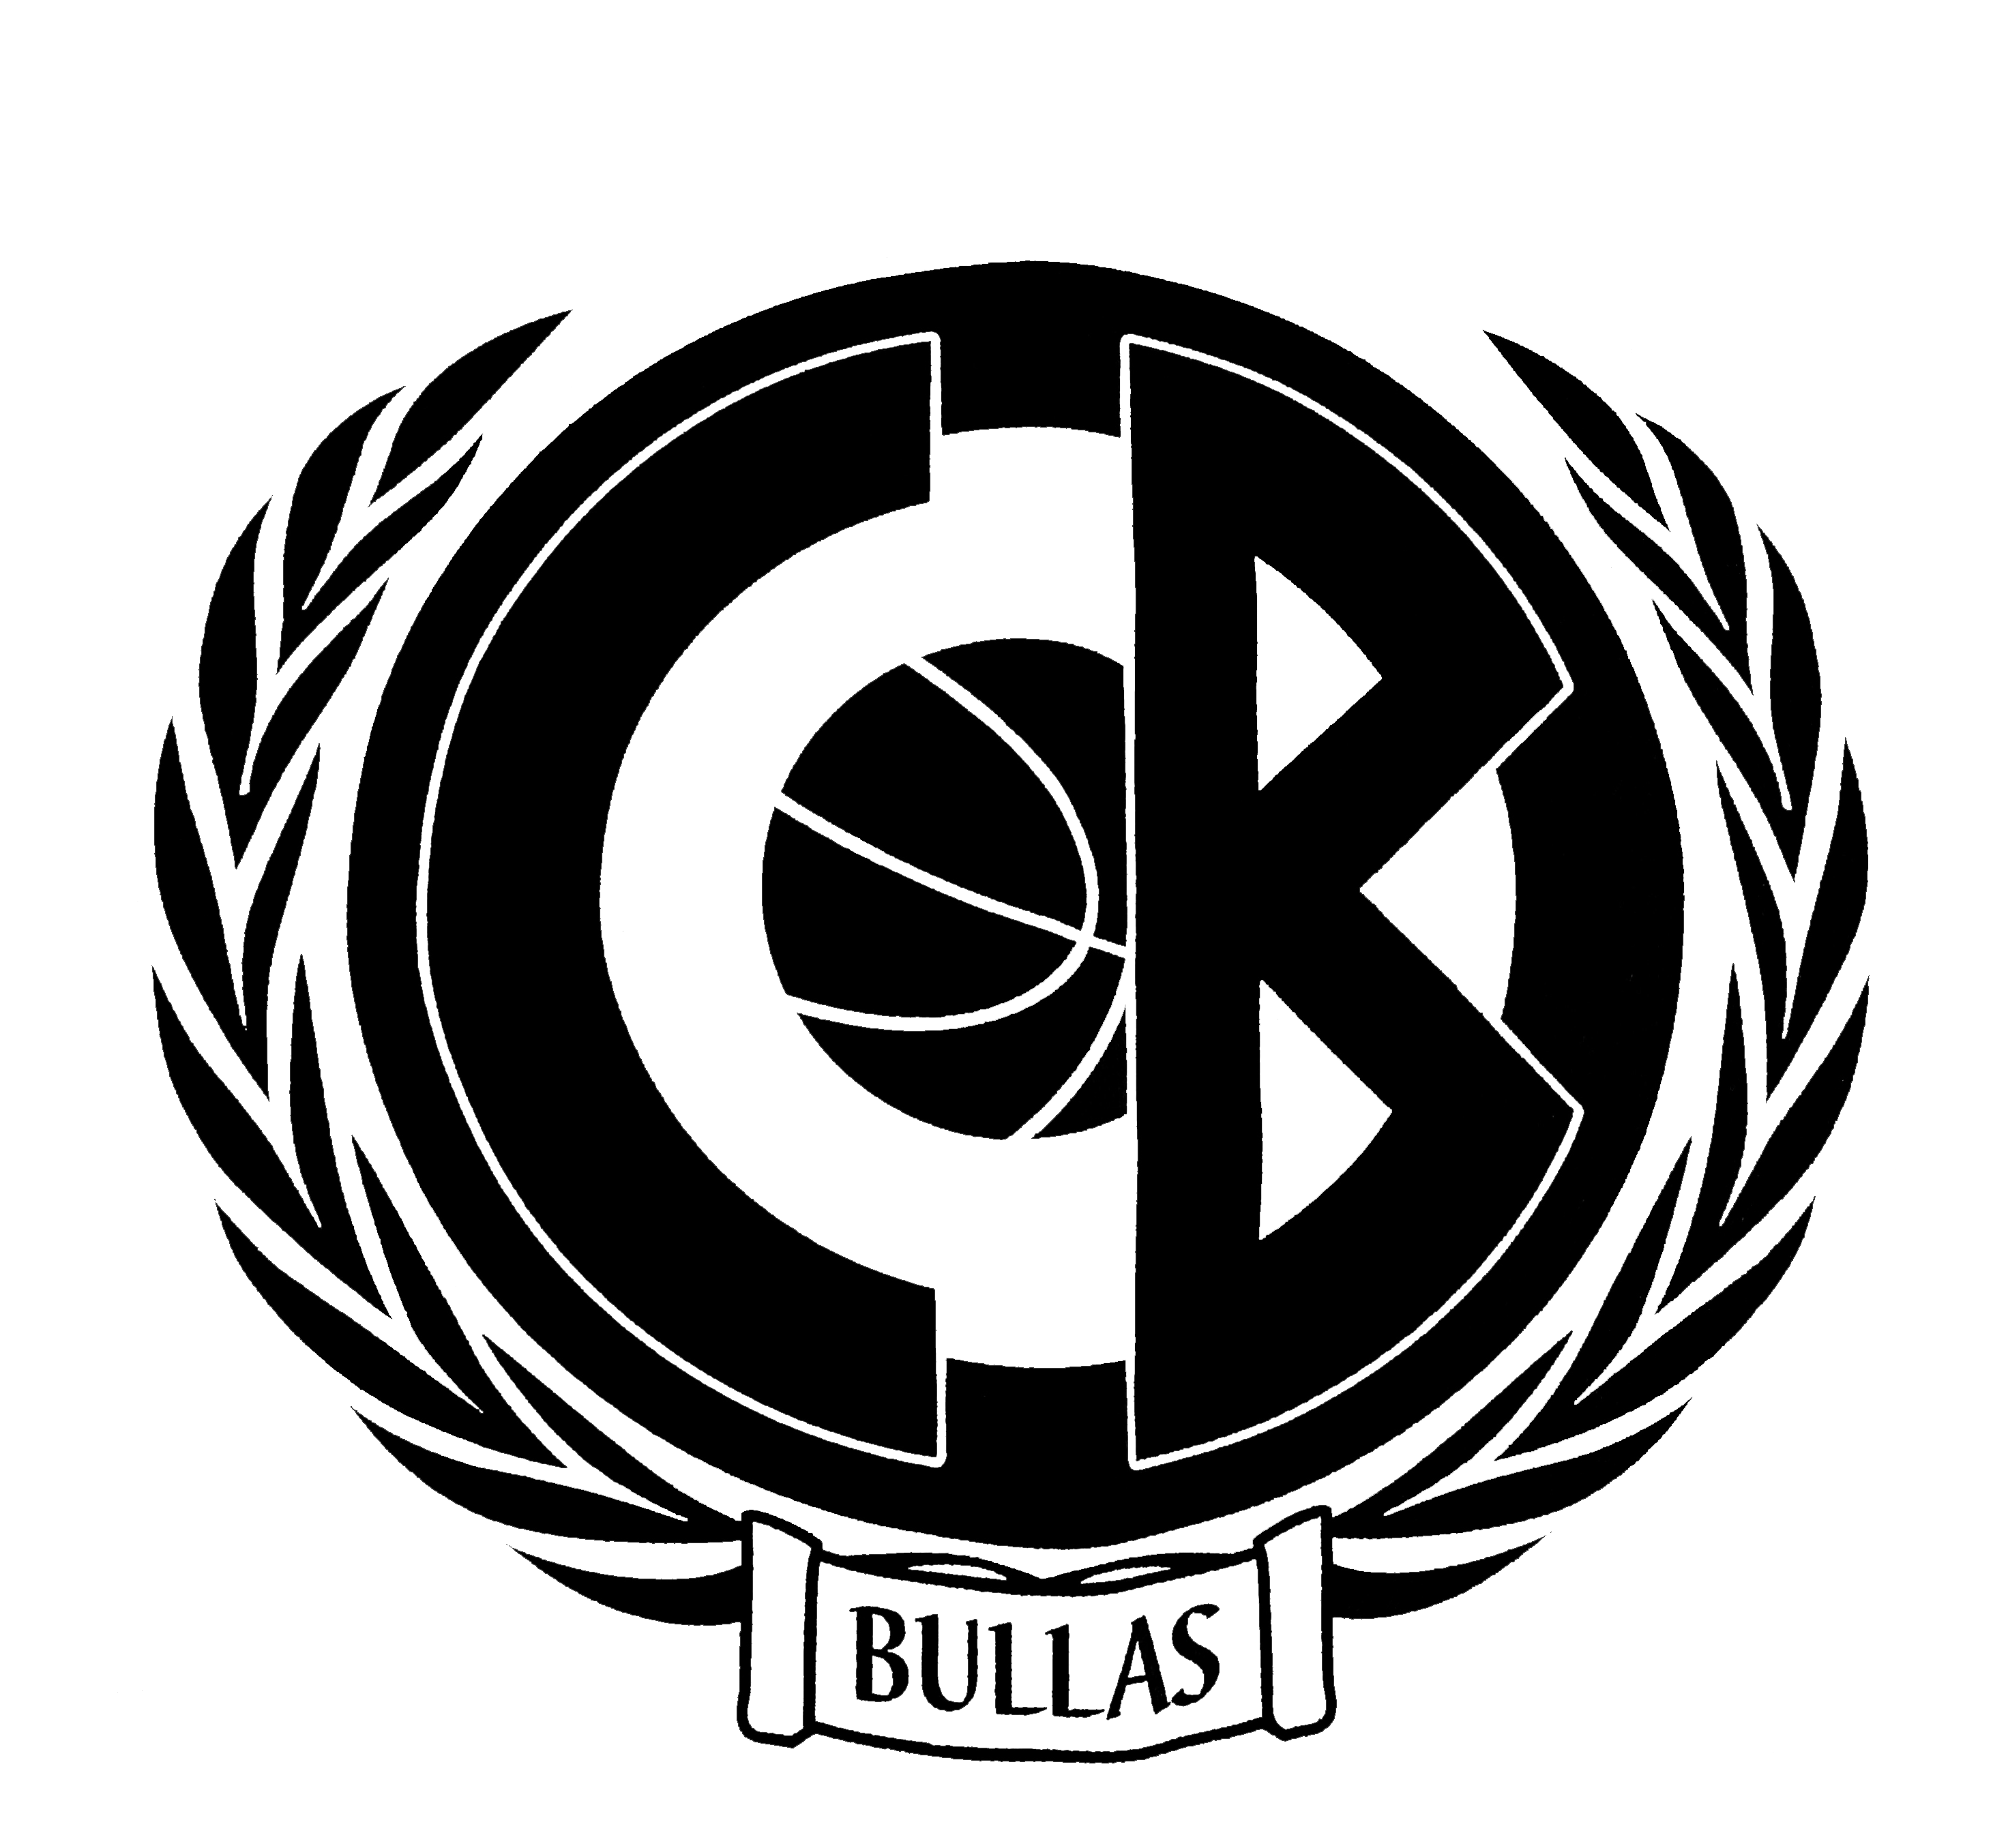 CLUB BALONCESTO BULLAS